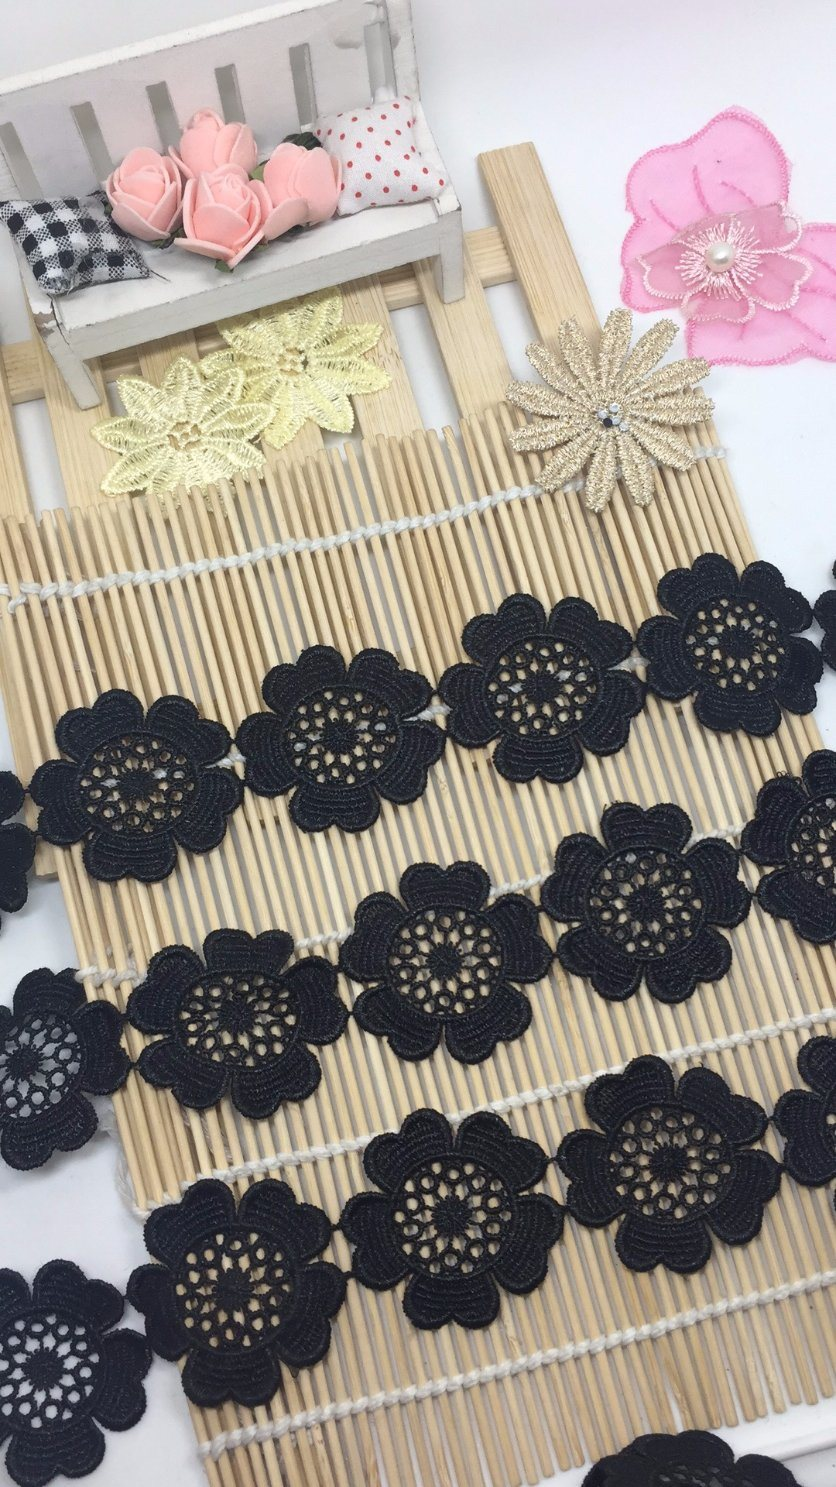 40cm Width Guipure Embroidery Trimming Polyester Lace Fabric for Garments & Home Textiles & Curtains & Girls Dress